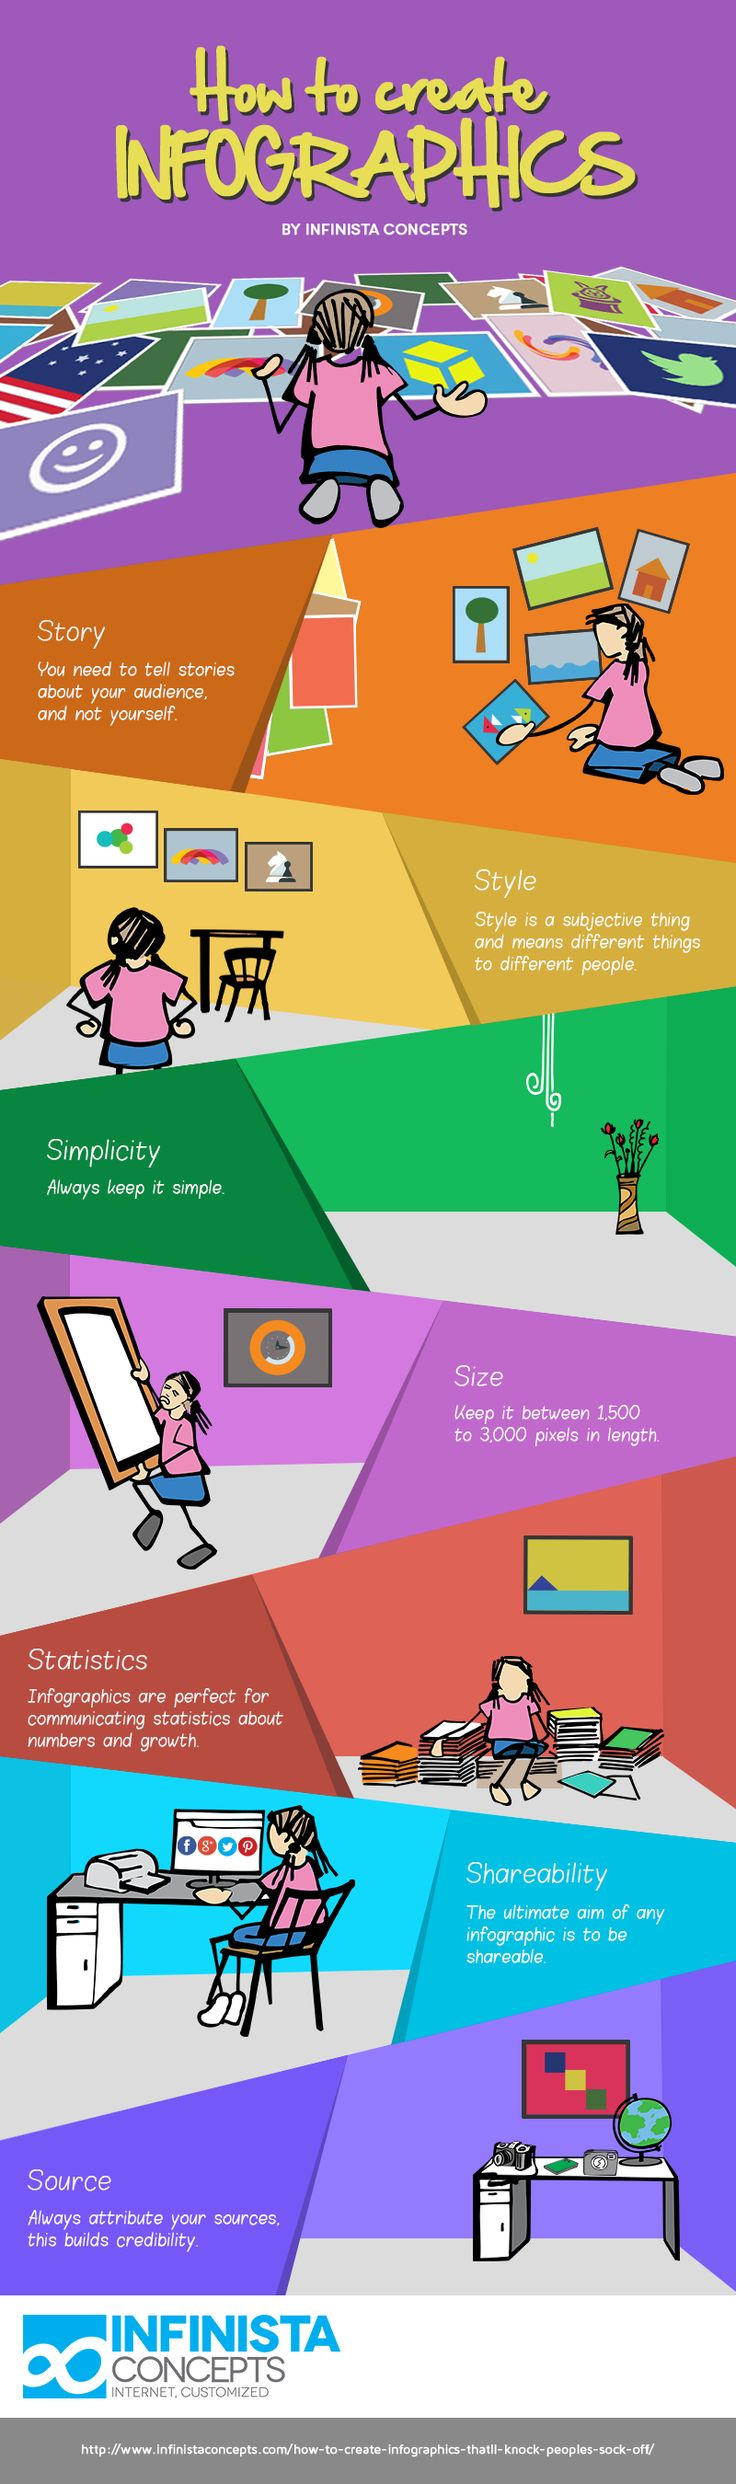 #Infographics are a #visual representation of information, data, information, or knowledge. They are great ways to tell a #story. Here's how!